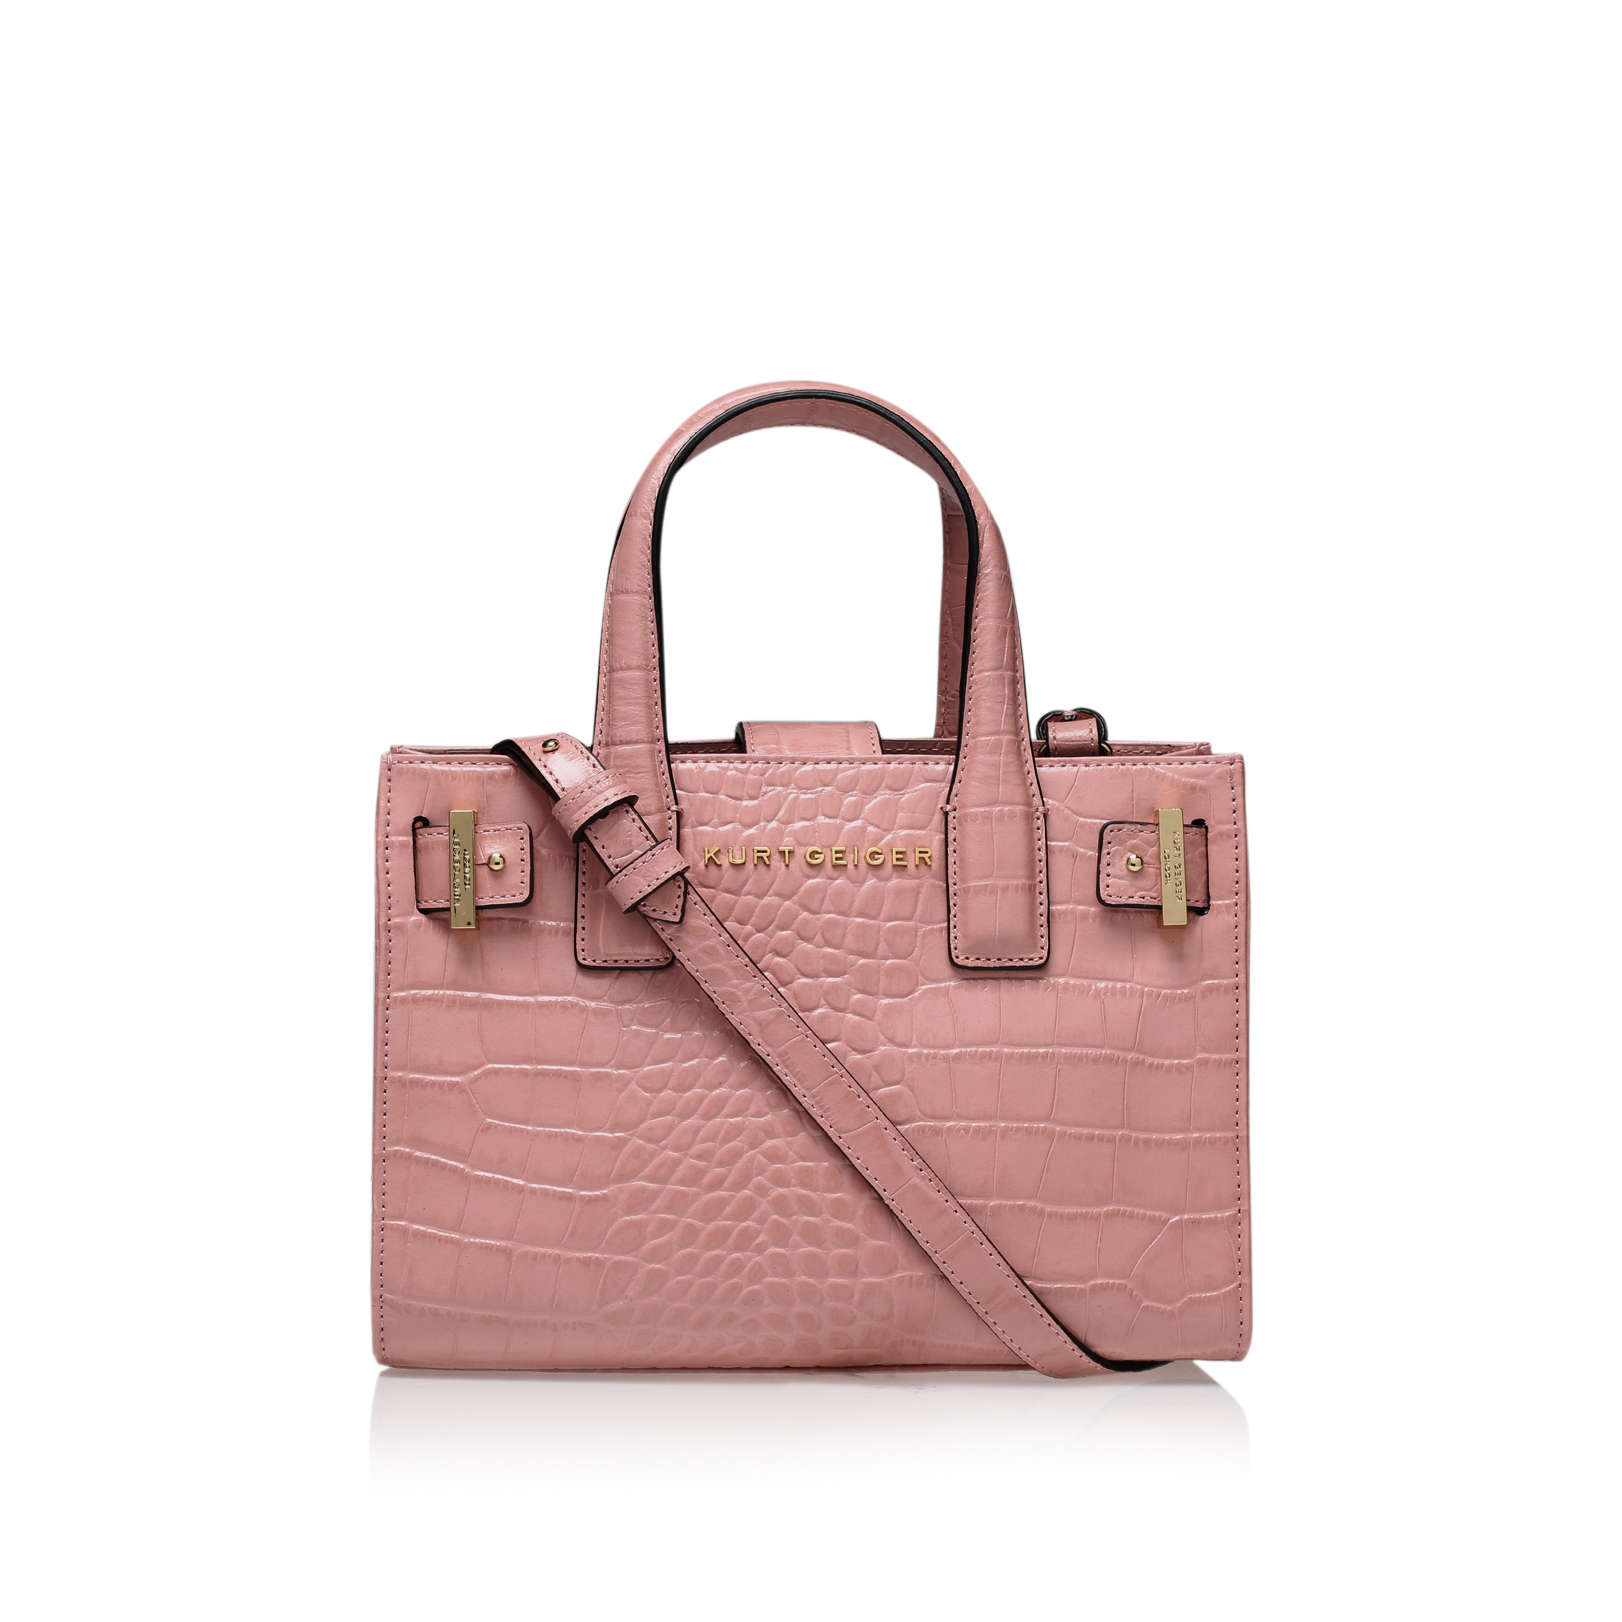 CROC HORIZ LONDON TOTE